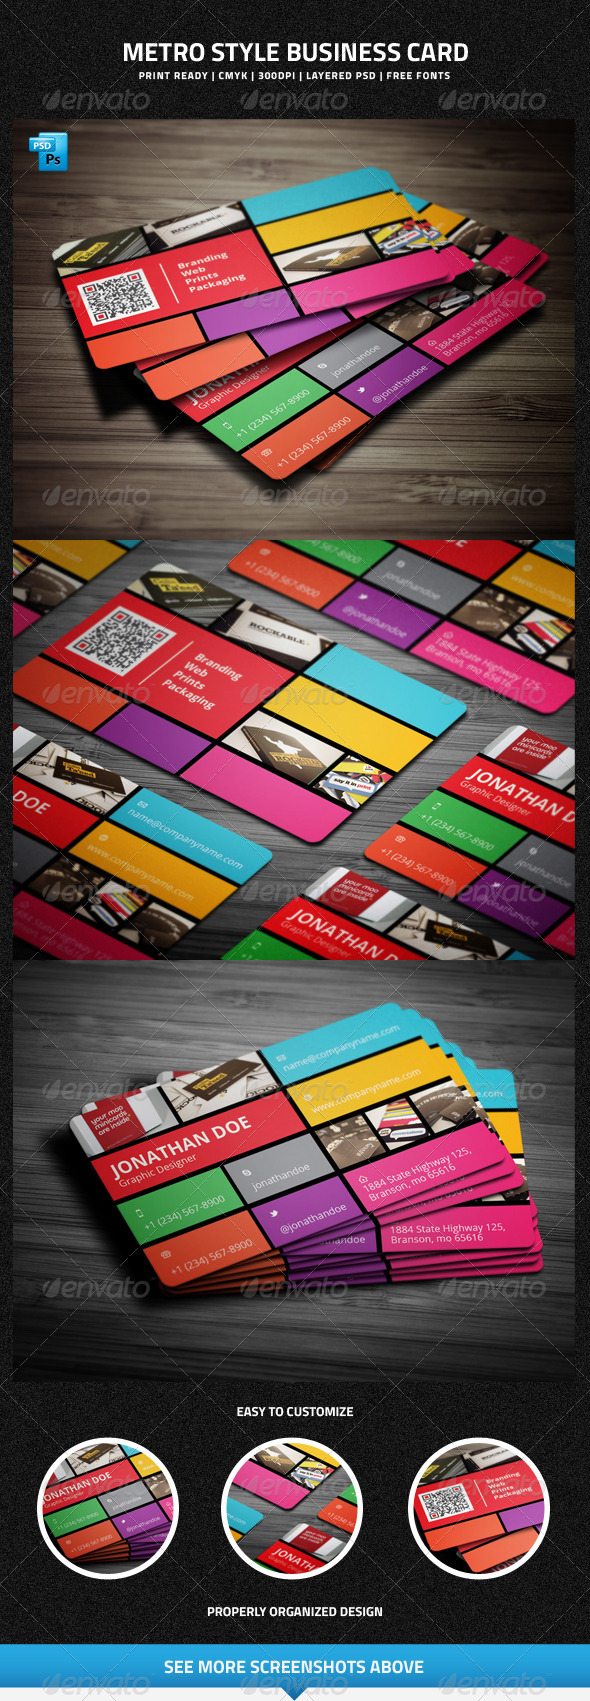 Metro Style Business Card 16